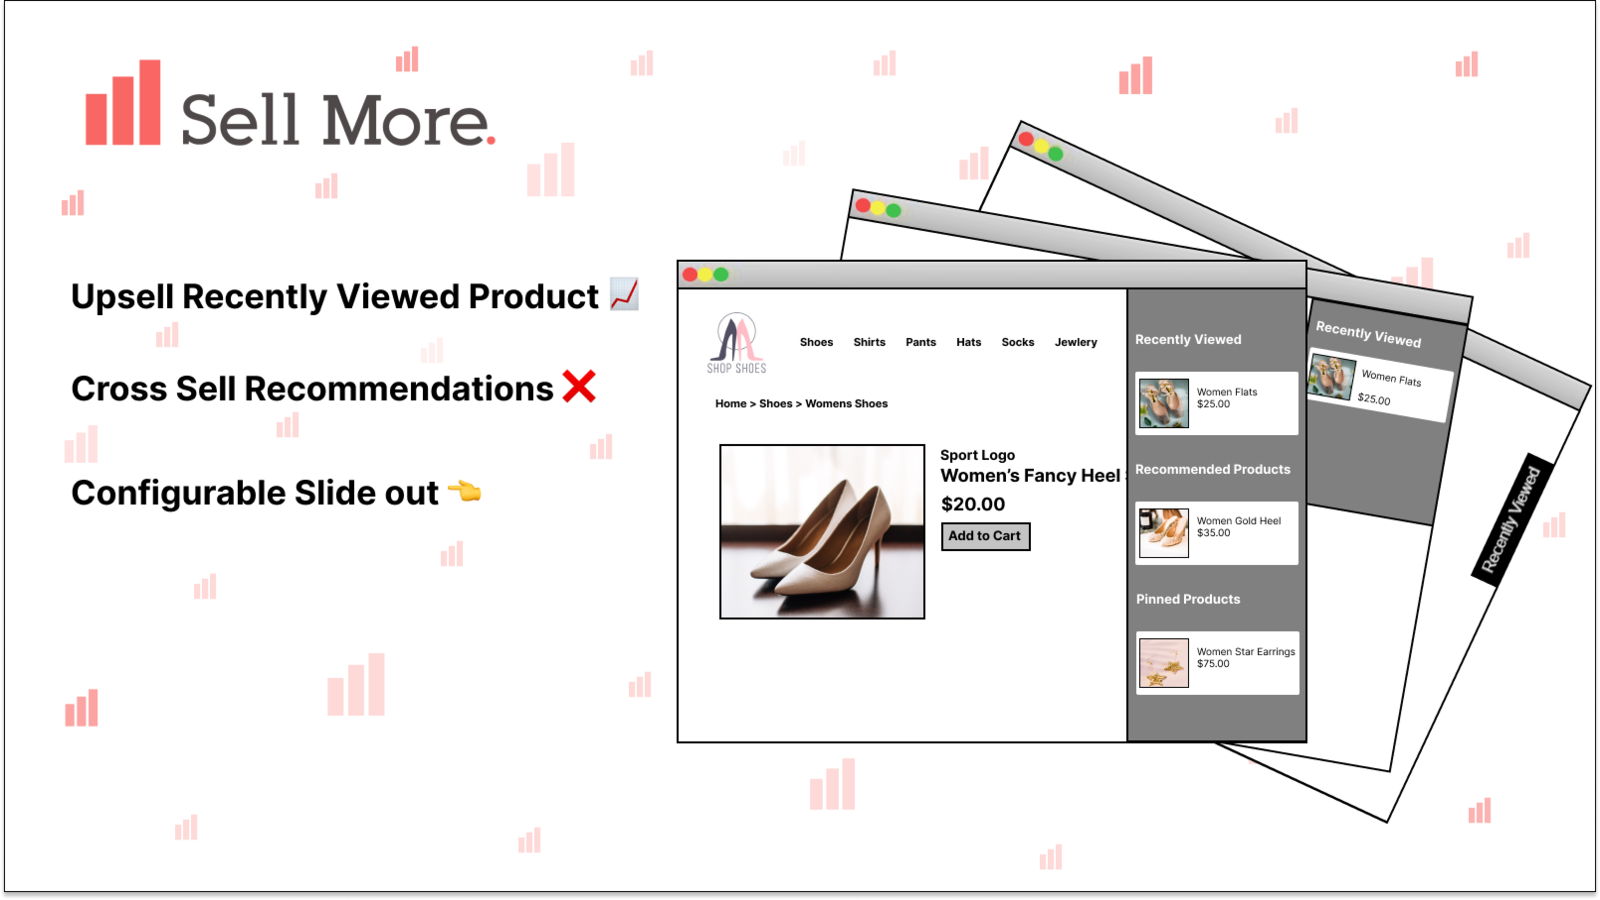 Cross sell recently viewed and recommended products in slide out